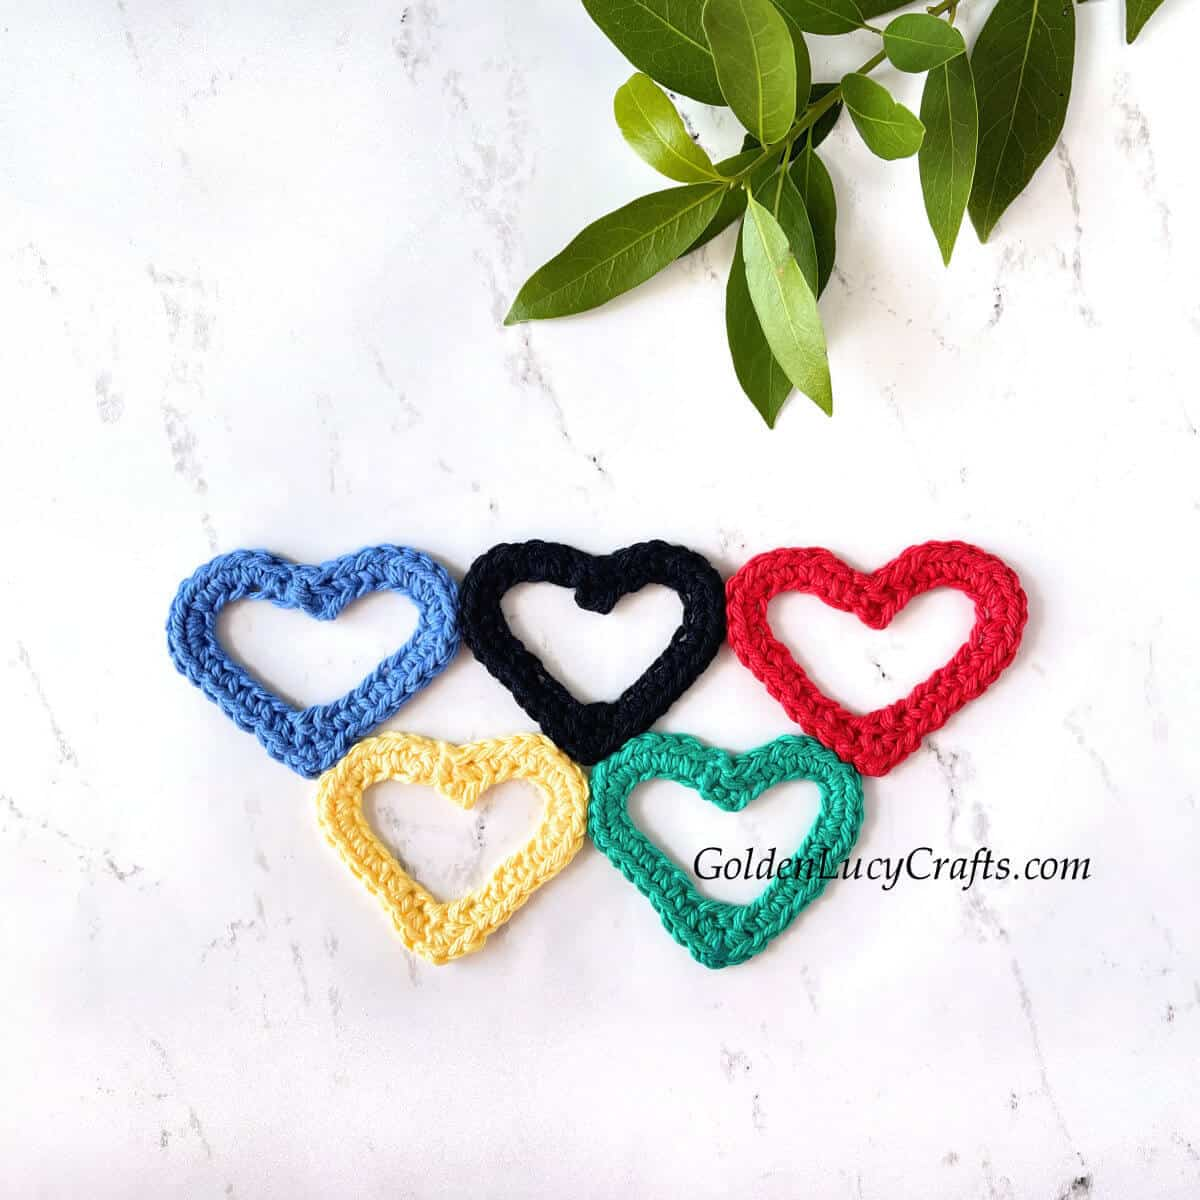 Crocheted heart-shaped Olympic rings applique.